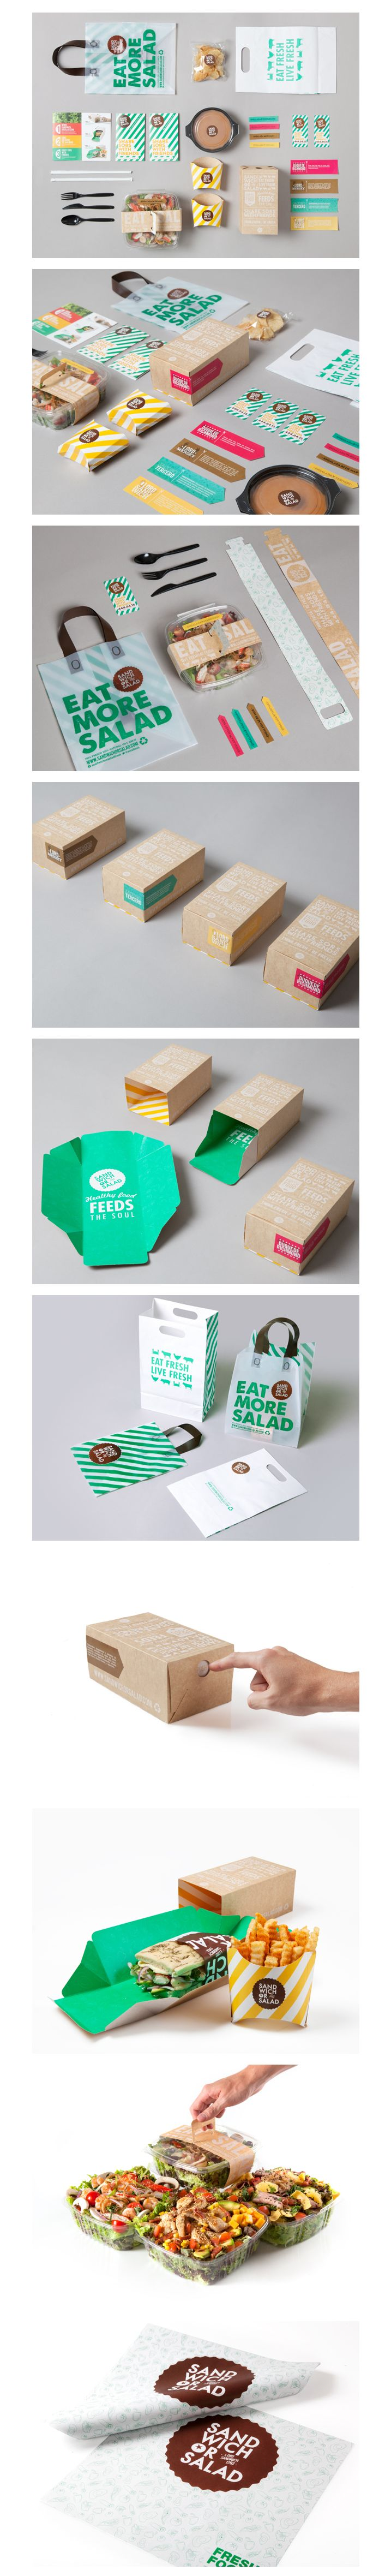 Sandwich or Salad #brand #identity #packaging / print blanc sur craft paper + surimpression en couleur